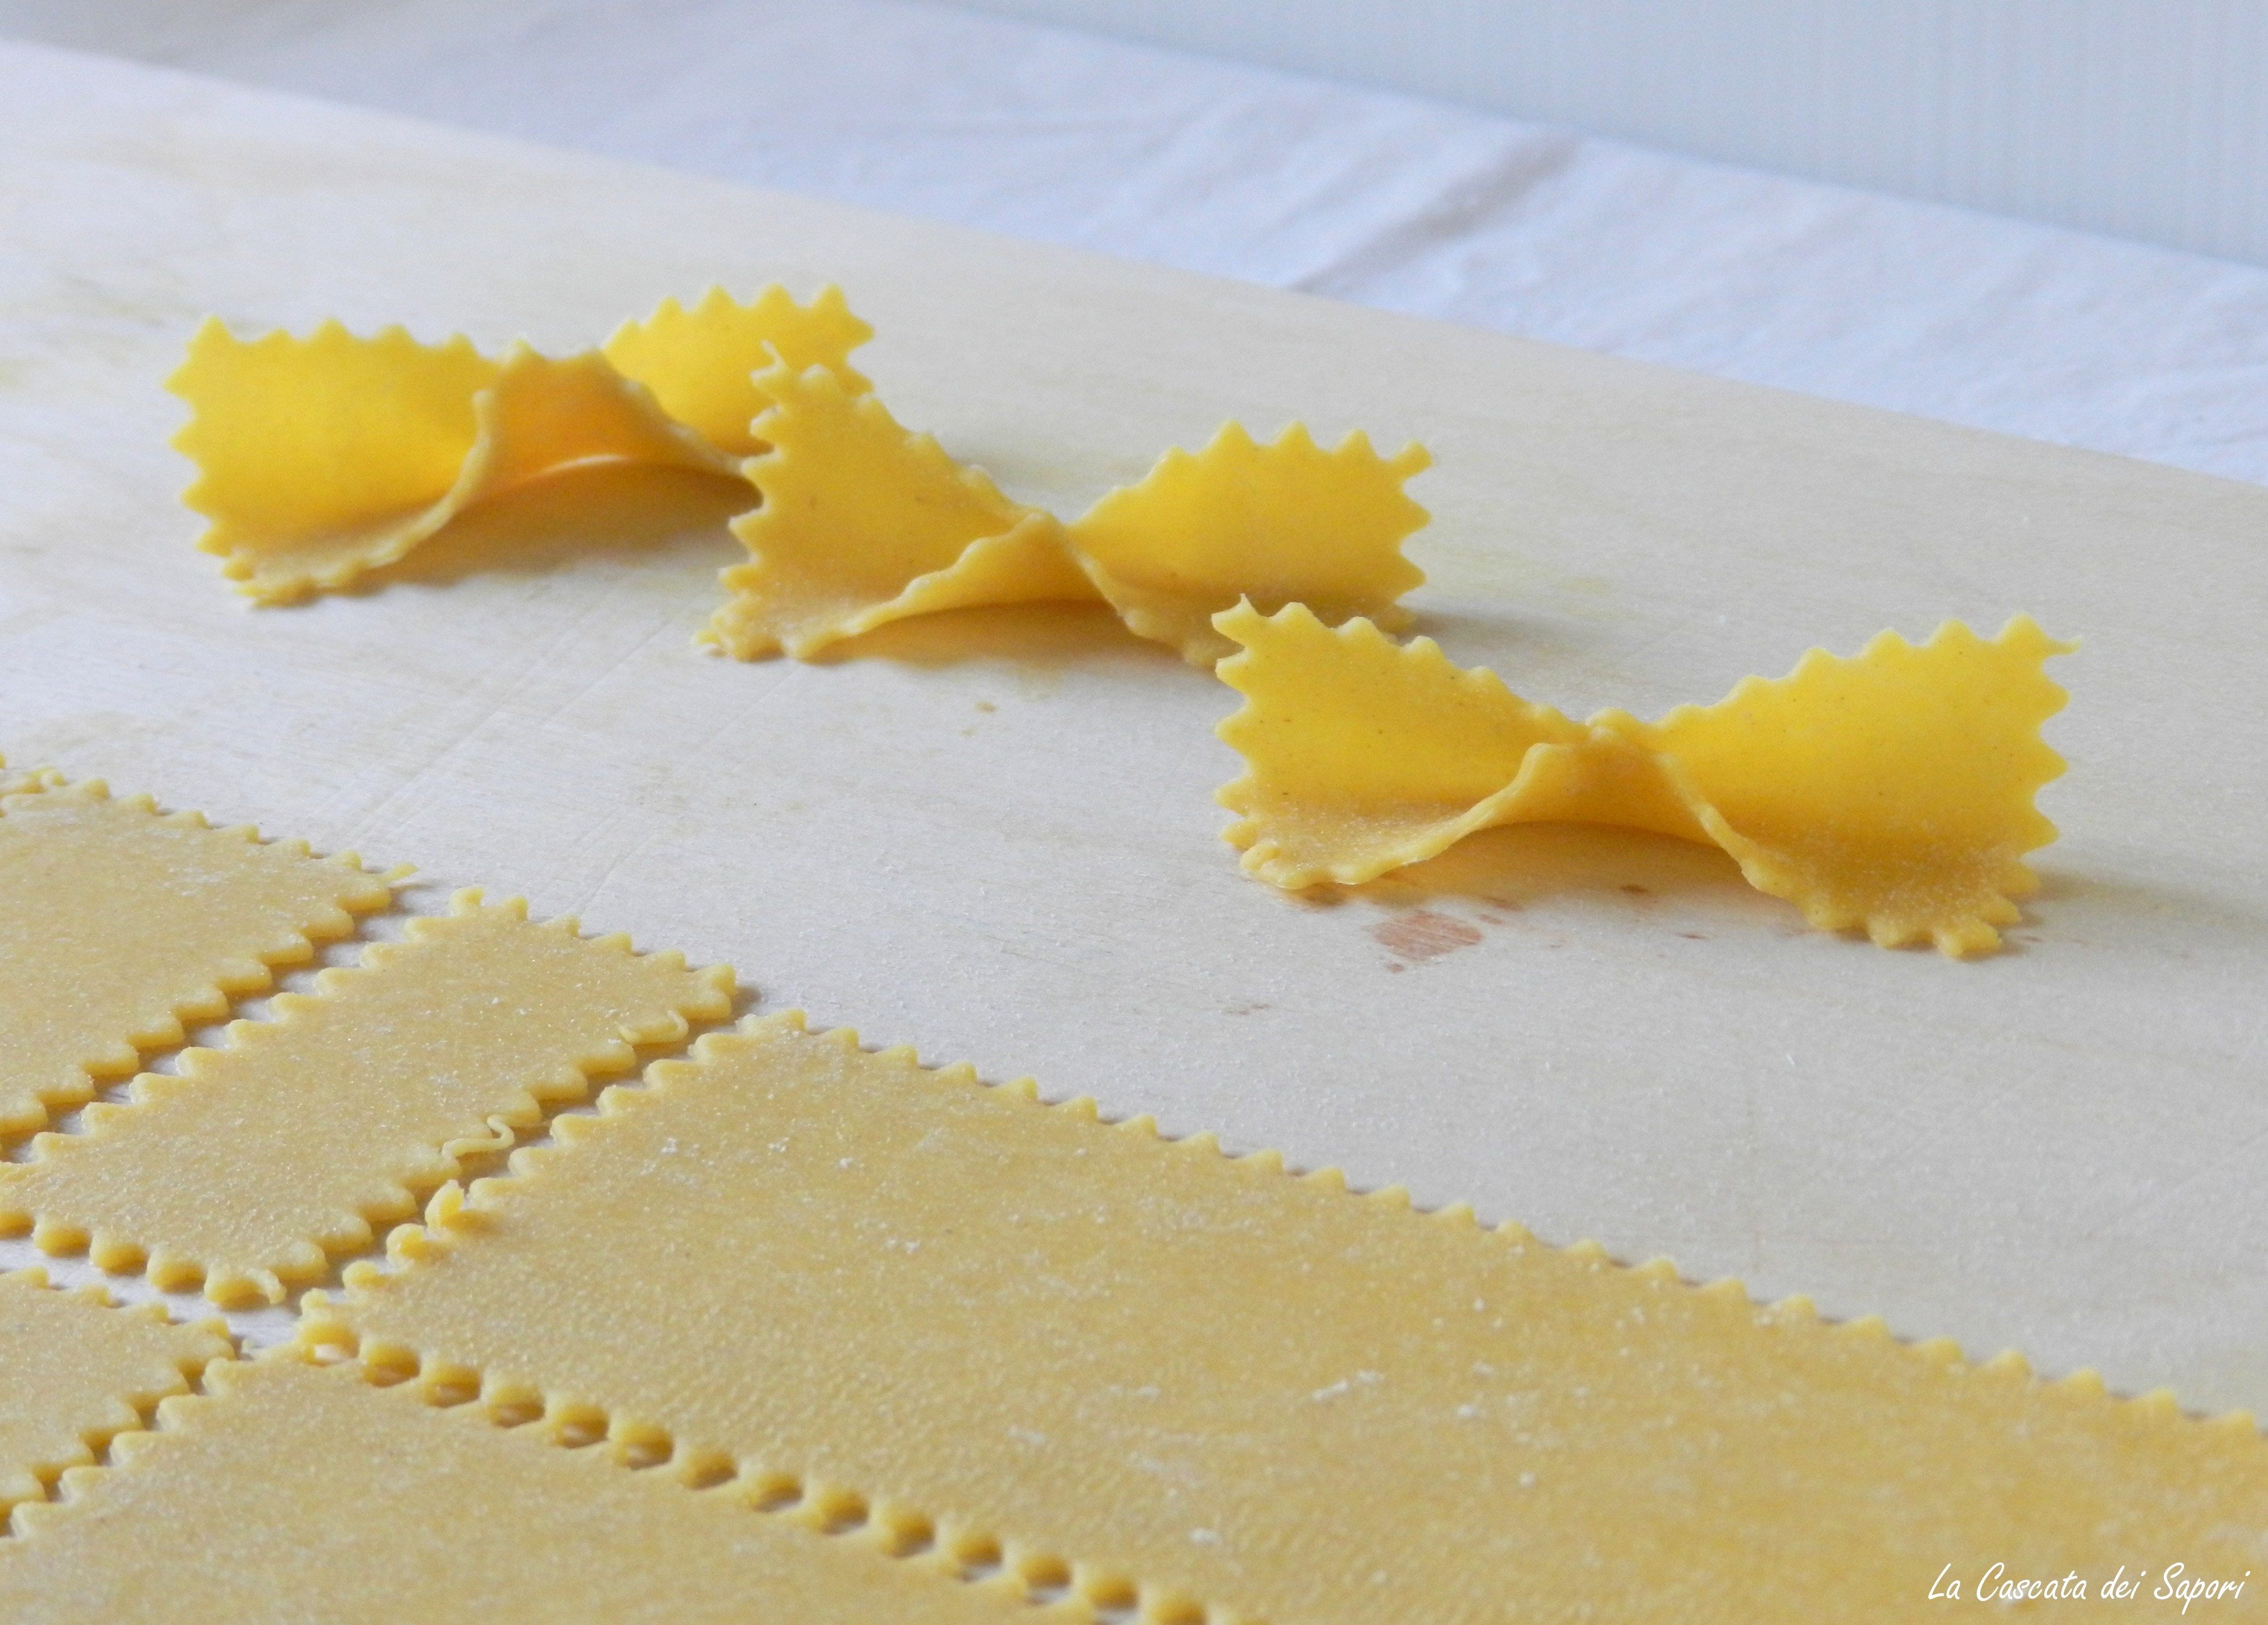 Farfalle homemade (fatte in casa)